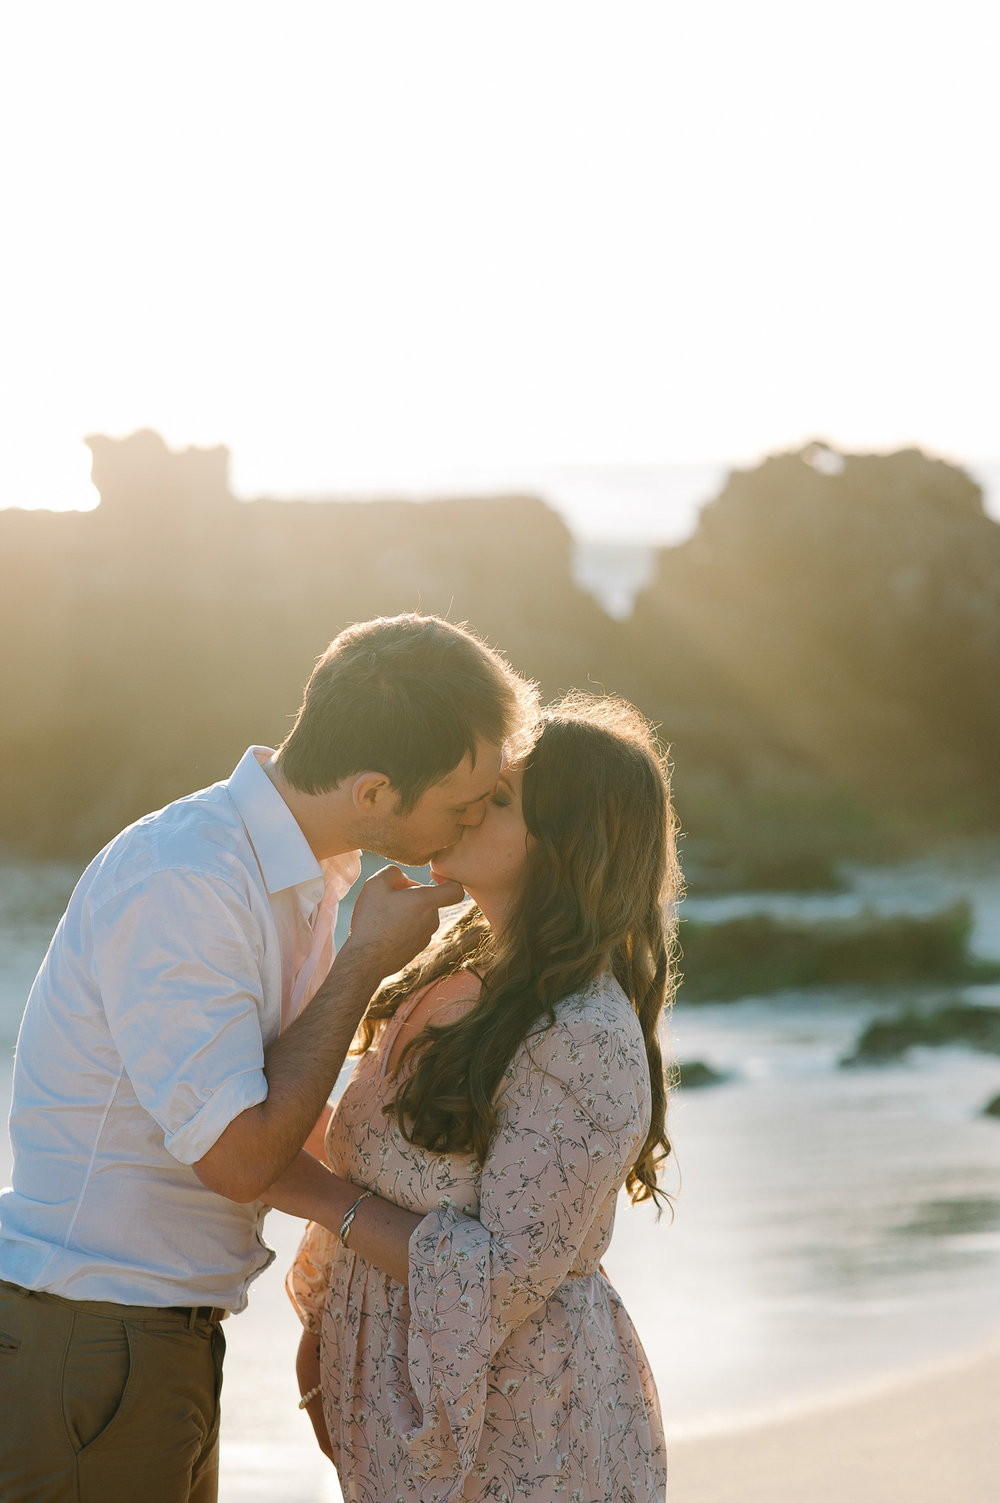 16-golden hour romantic pre wedding photos.jpg